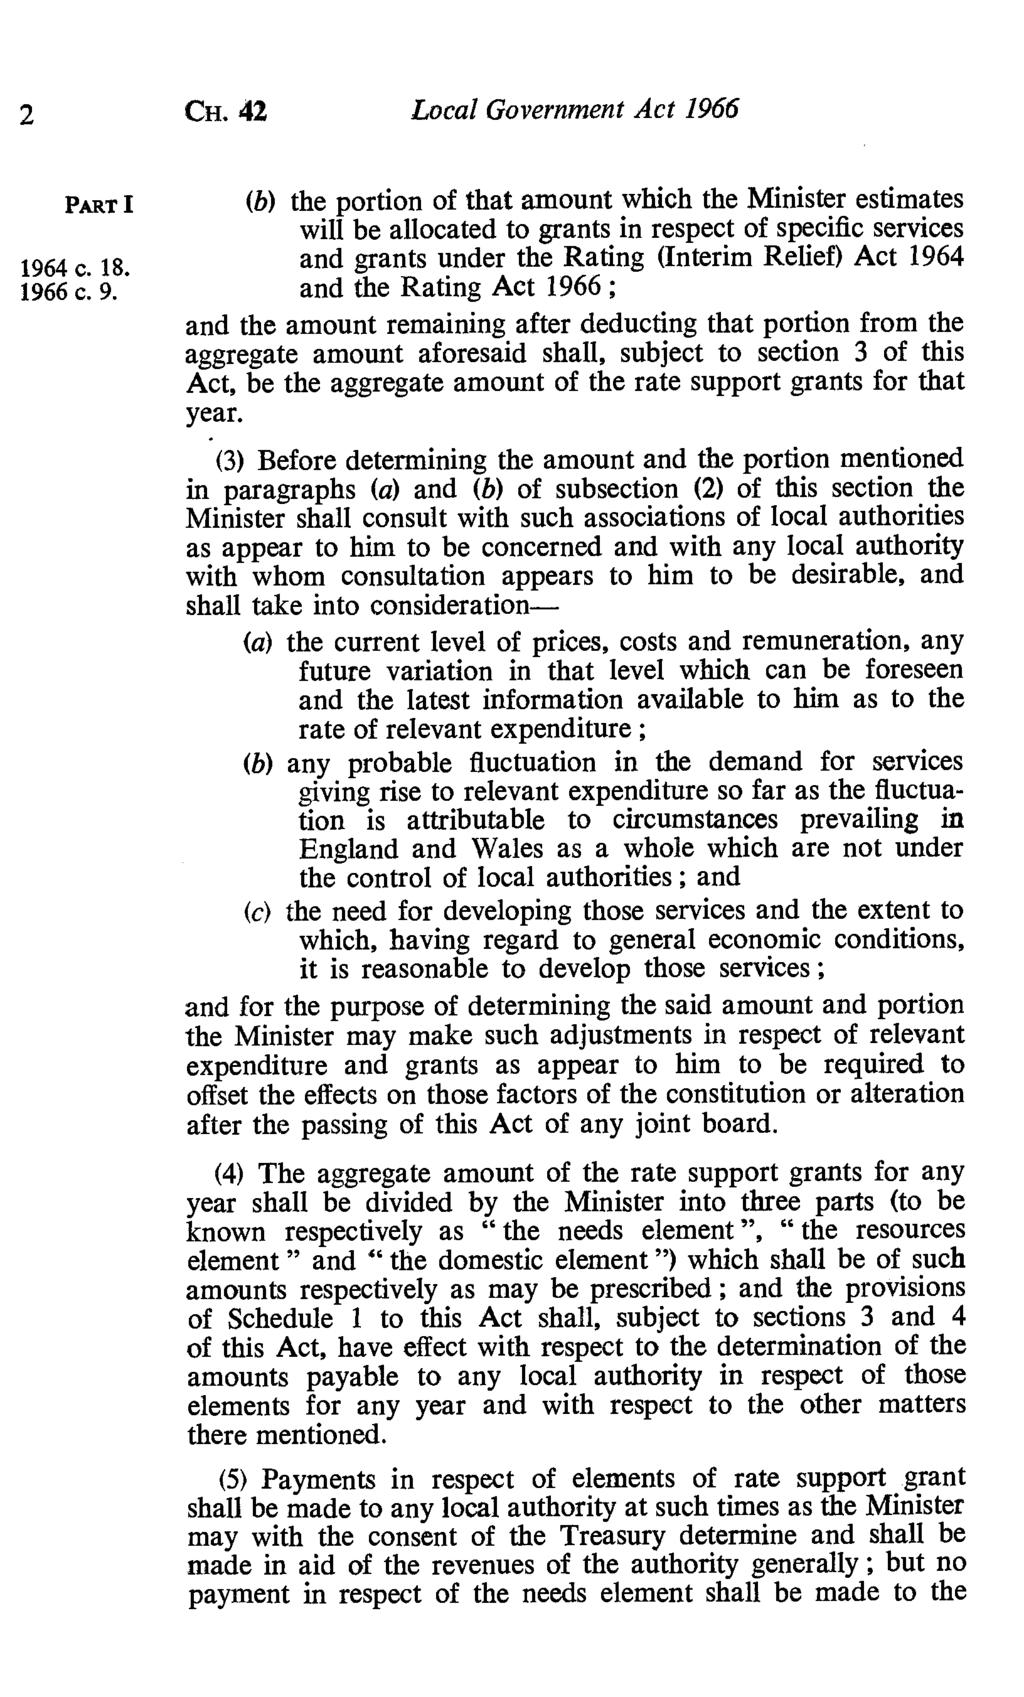 2 CH. 42 Local Government Act 1966 (b) the portion of that amount which the Minister estimates will be allocated to grants in respect of specific services 1964 c. 18.